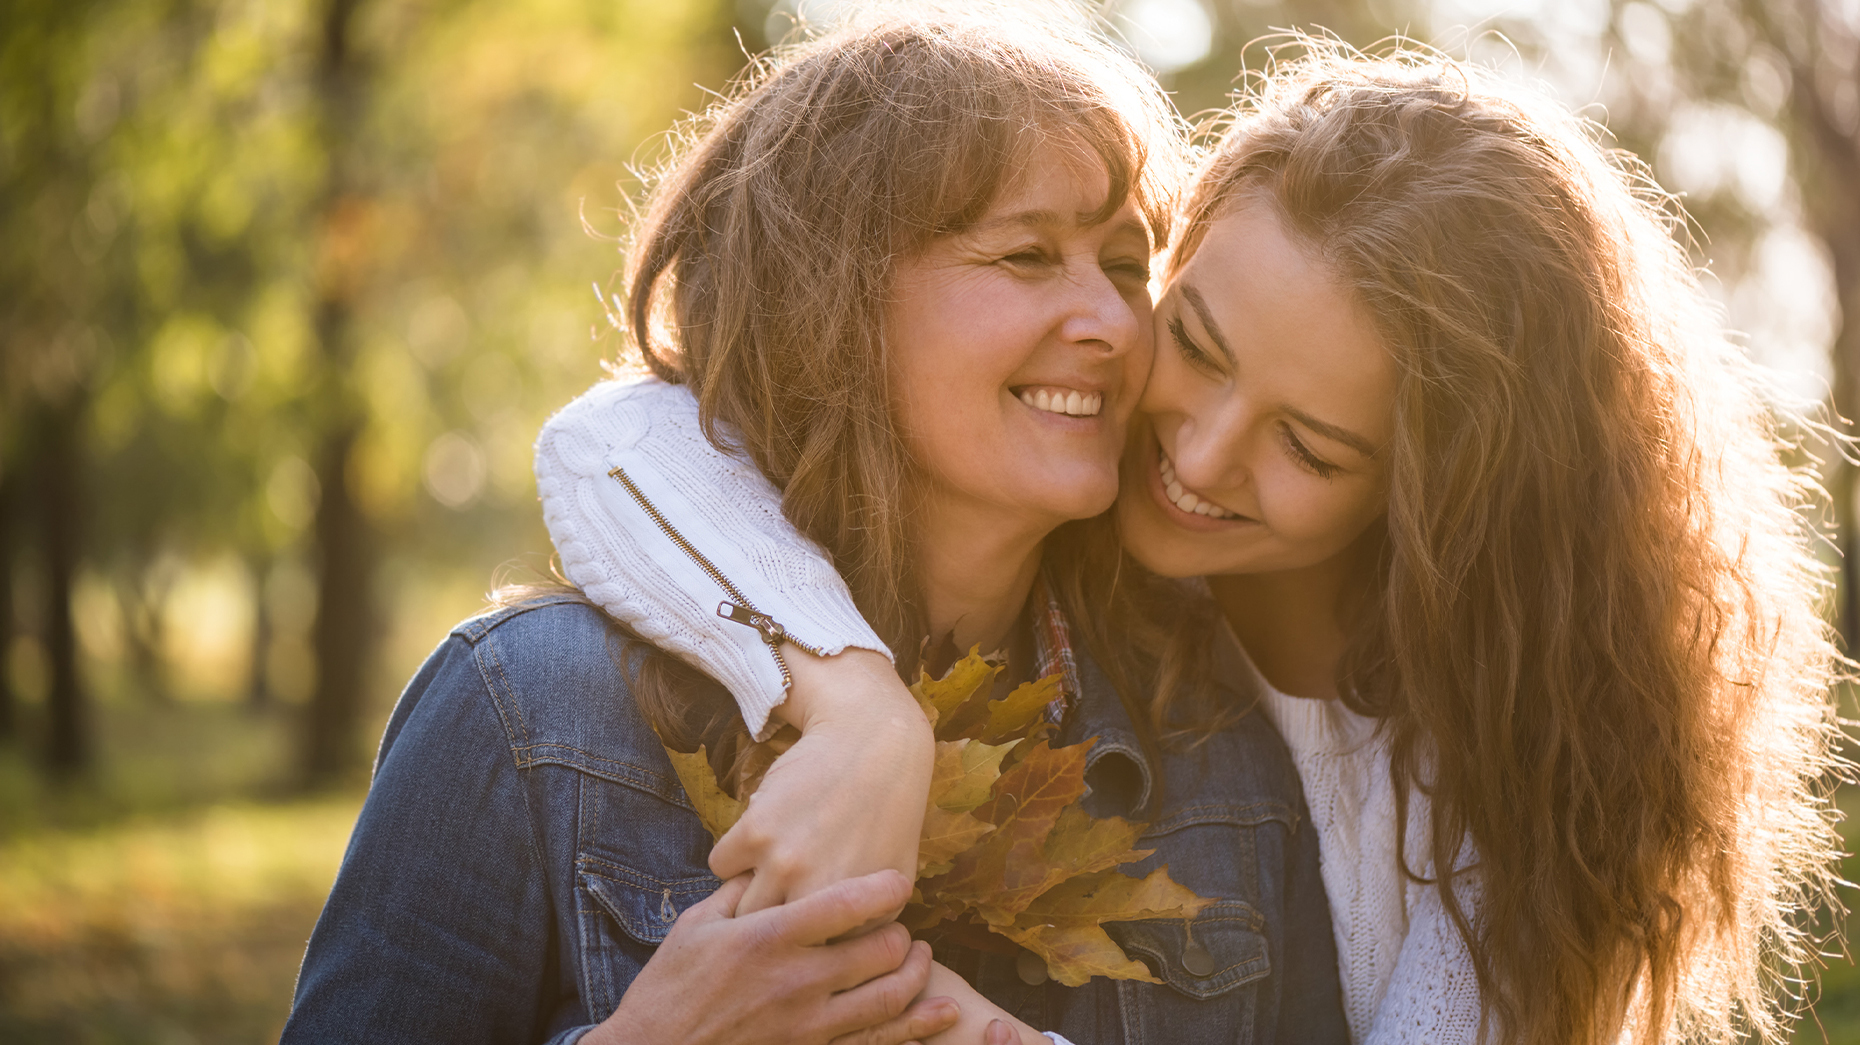 Hug mom a little tighter this Mother's Day